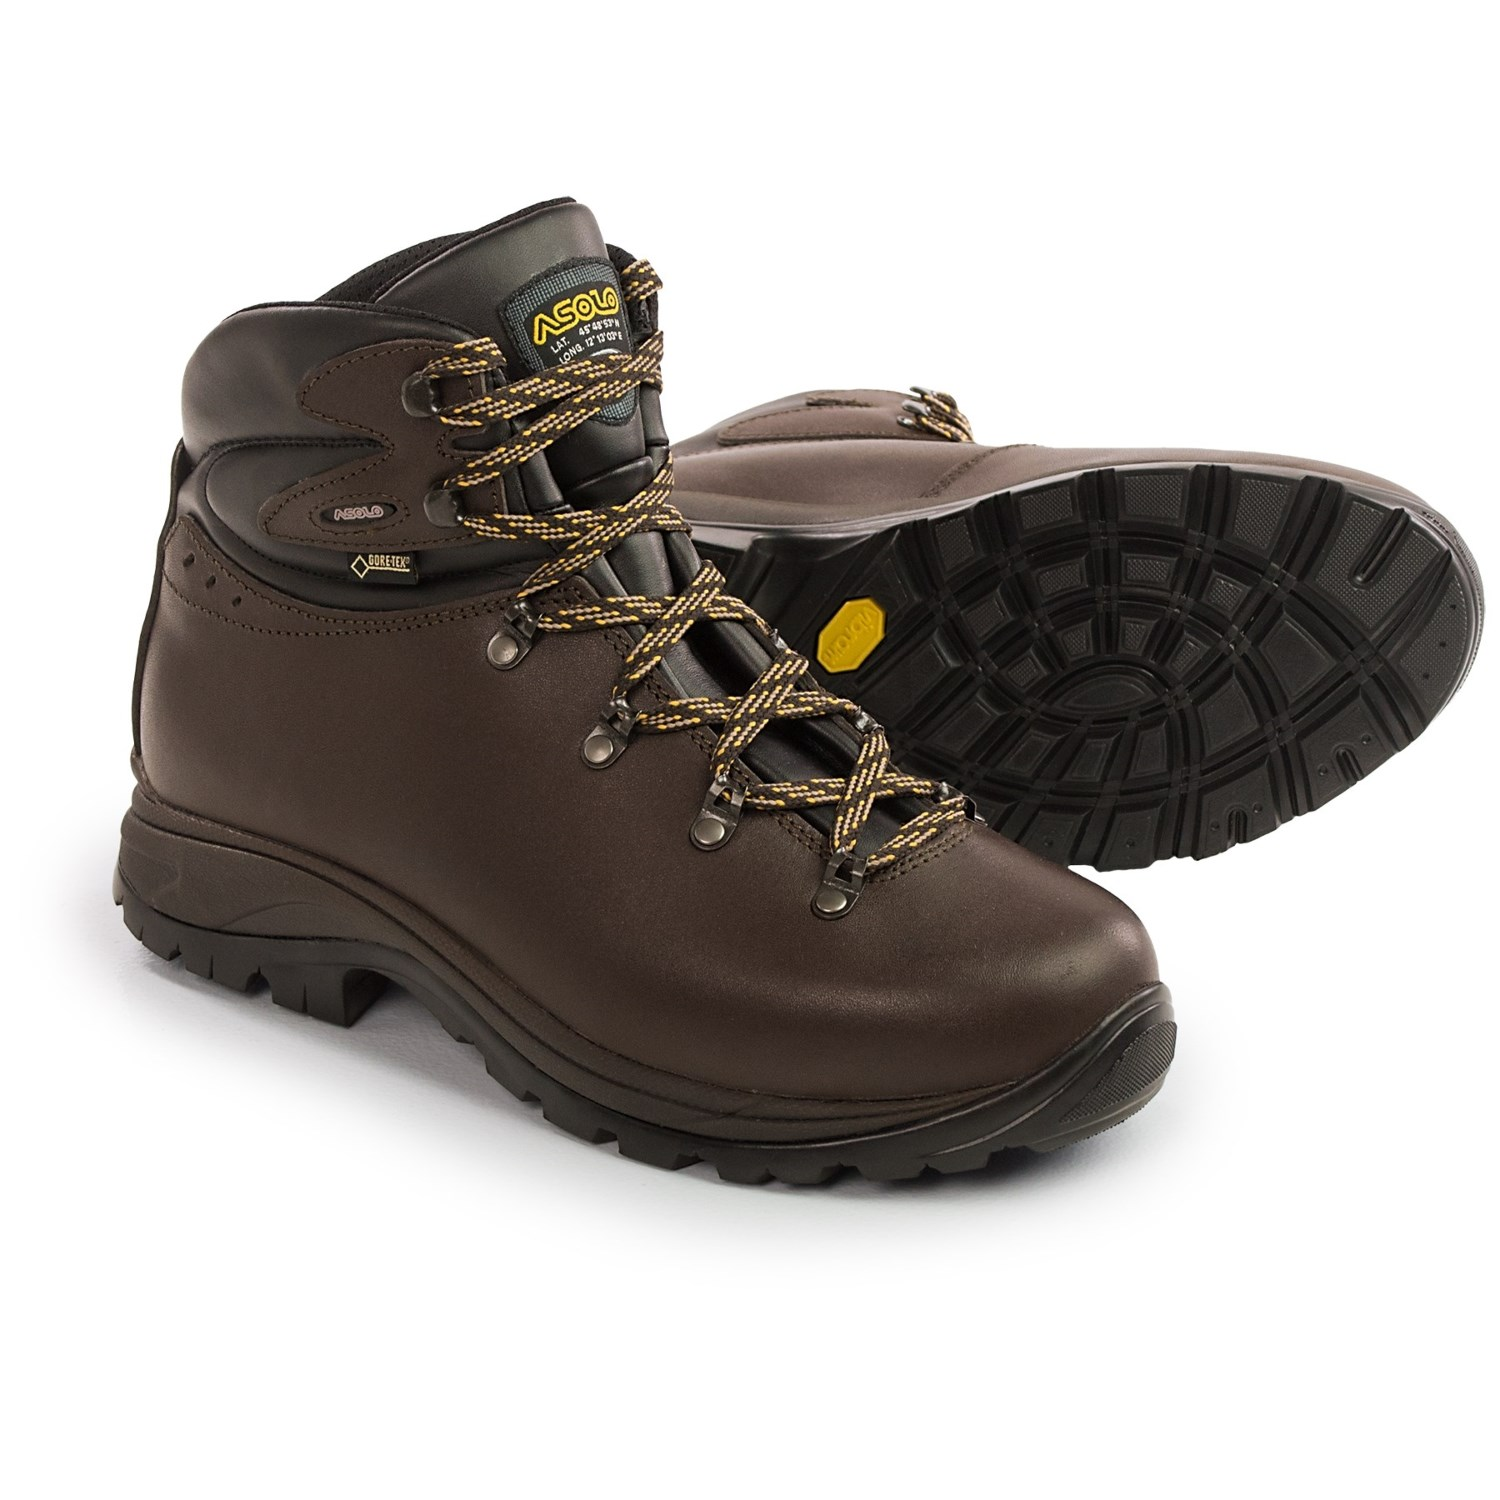 Asolo Scafell Gore-Tex® Hiking Boots (For Men) - Save 37%